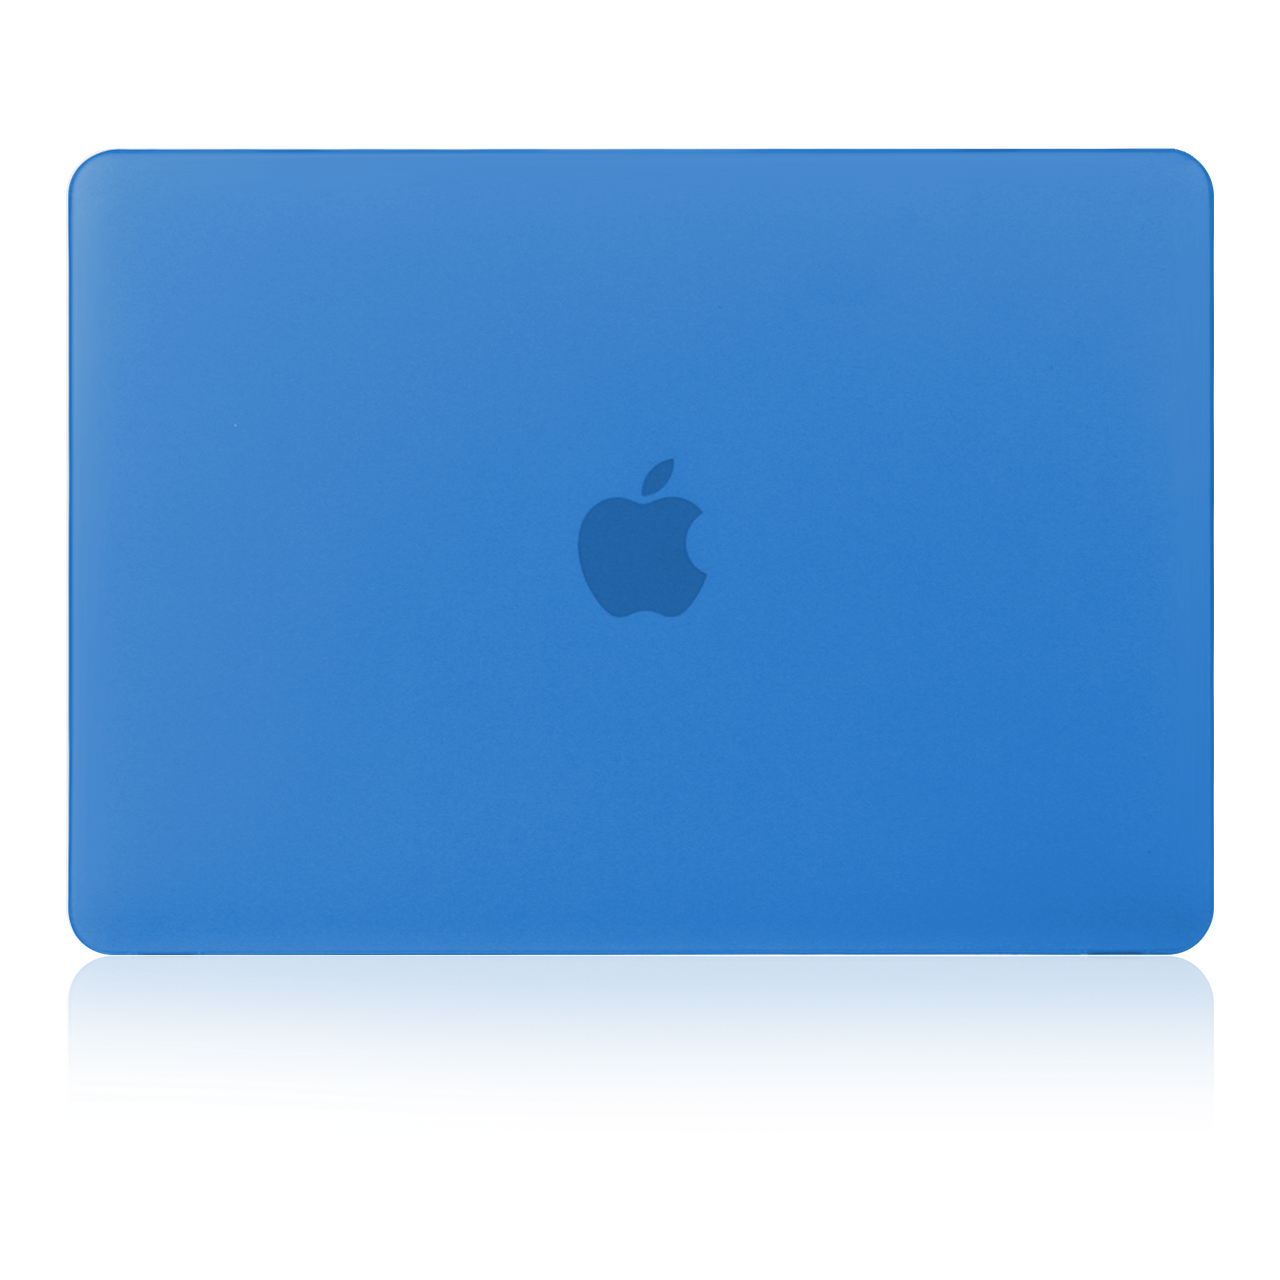 Накладка для ноутбука MacBook Pro 15 with/without Touch Bar Blue